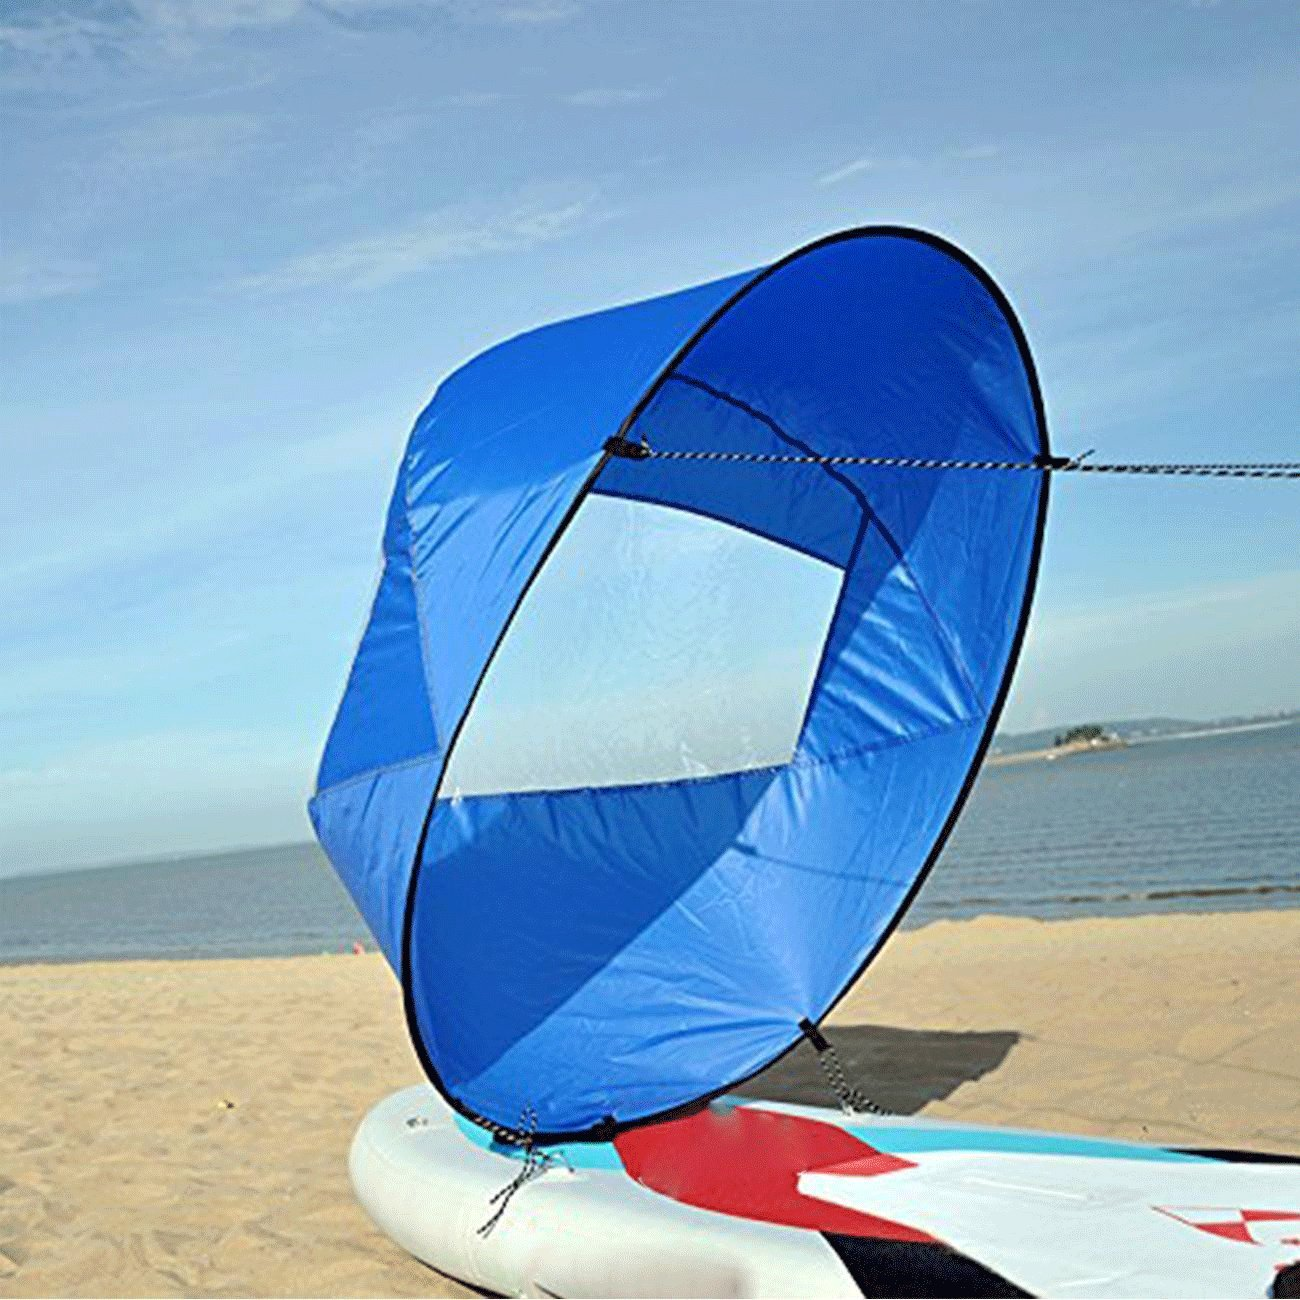 WICHEMI 42'' Durable Downwind Wind Sail Sup Paddle Board Instant Popup for Kayak Boat Sailboat Canoe Foldable Style Blue